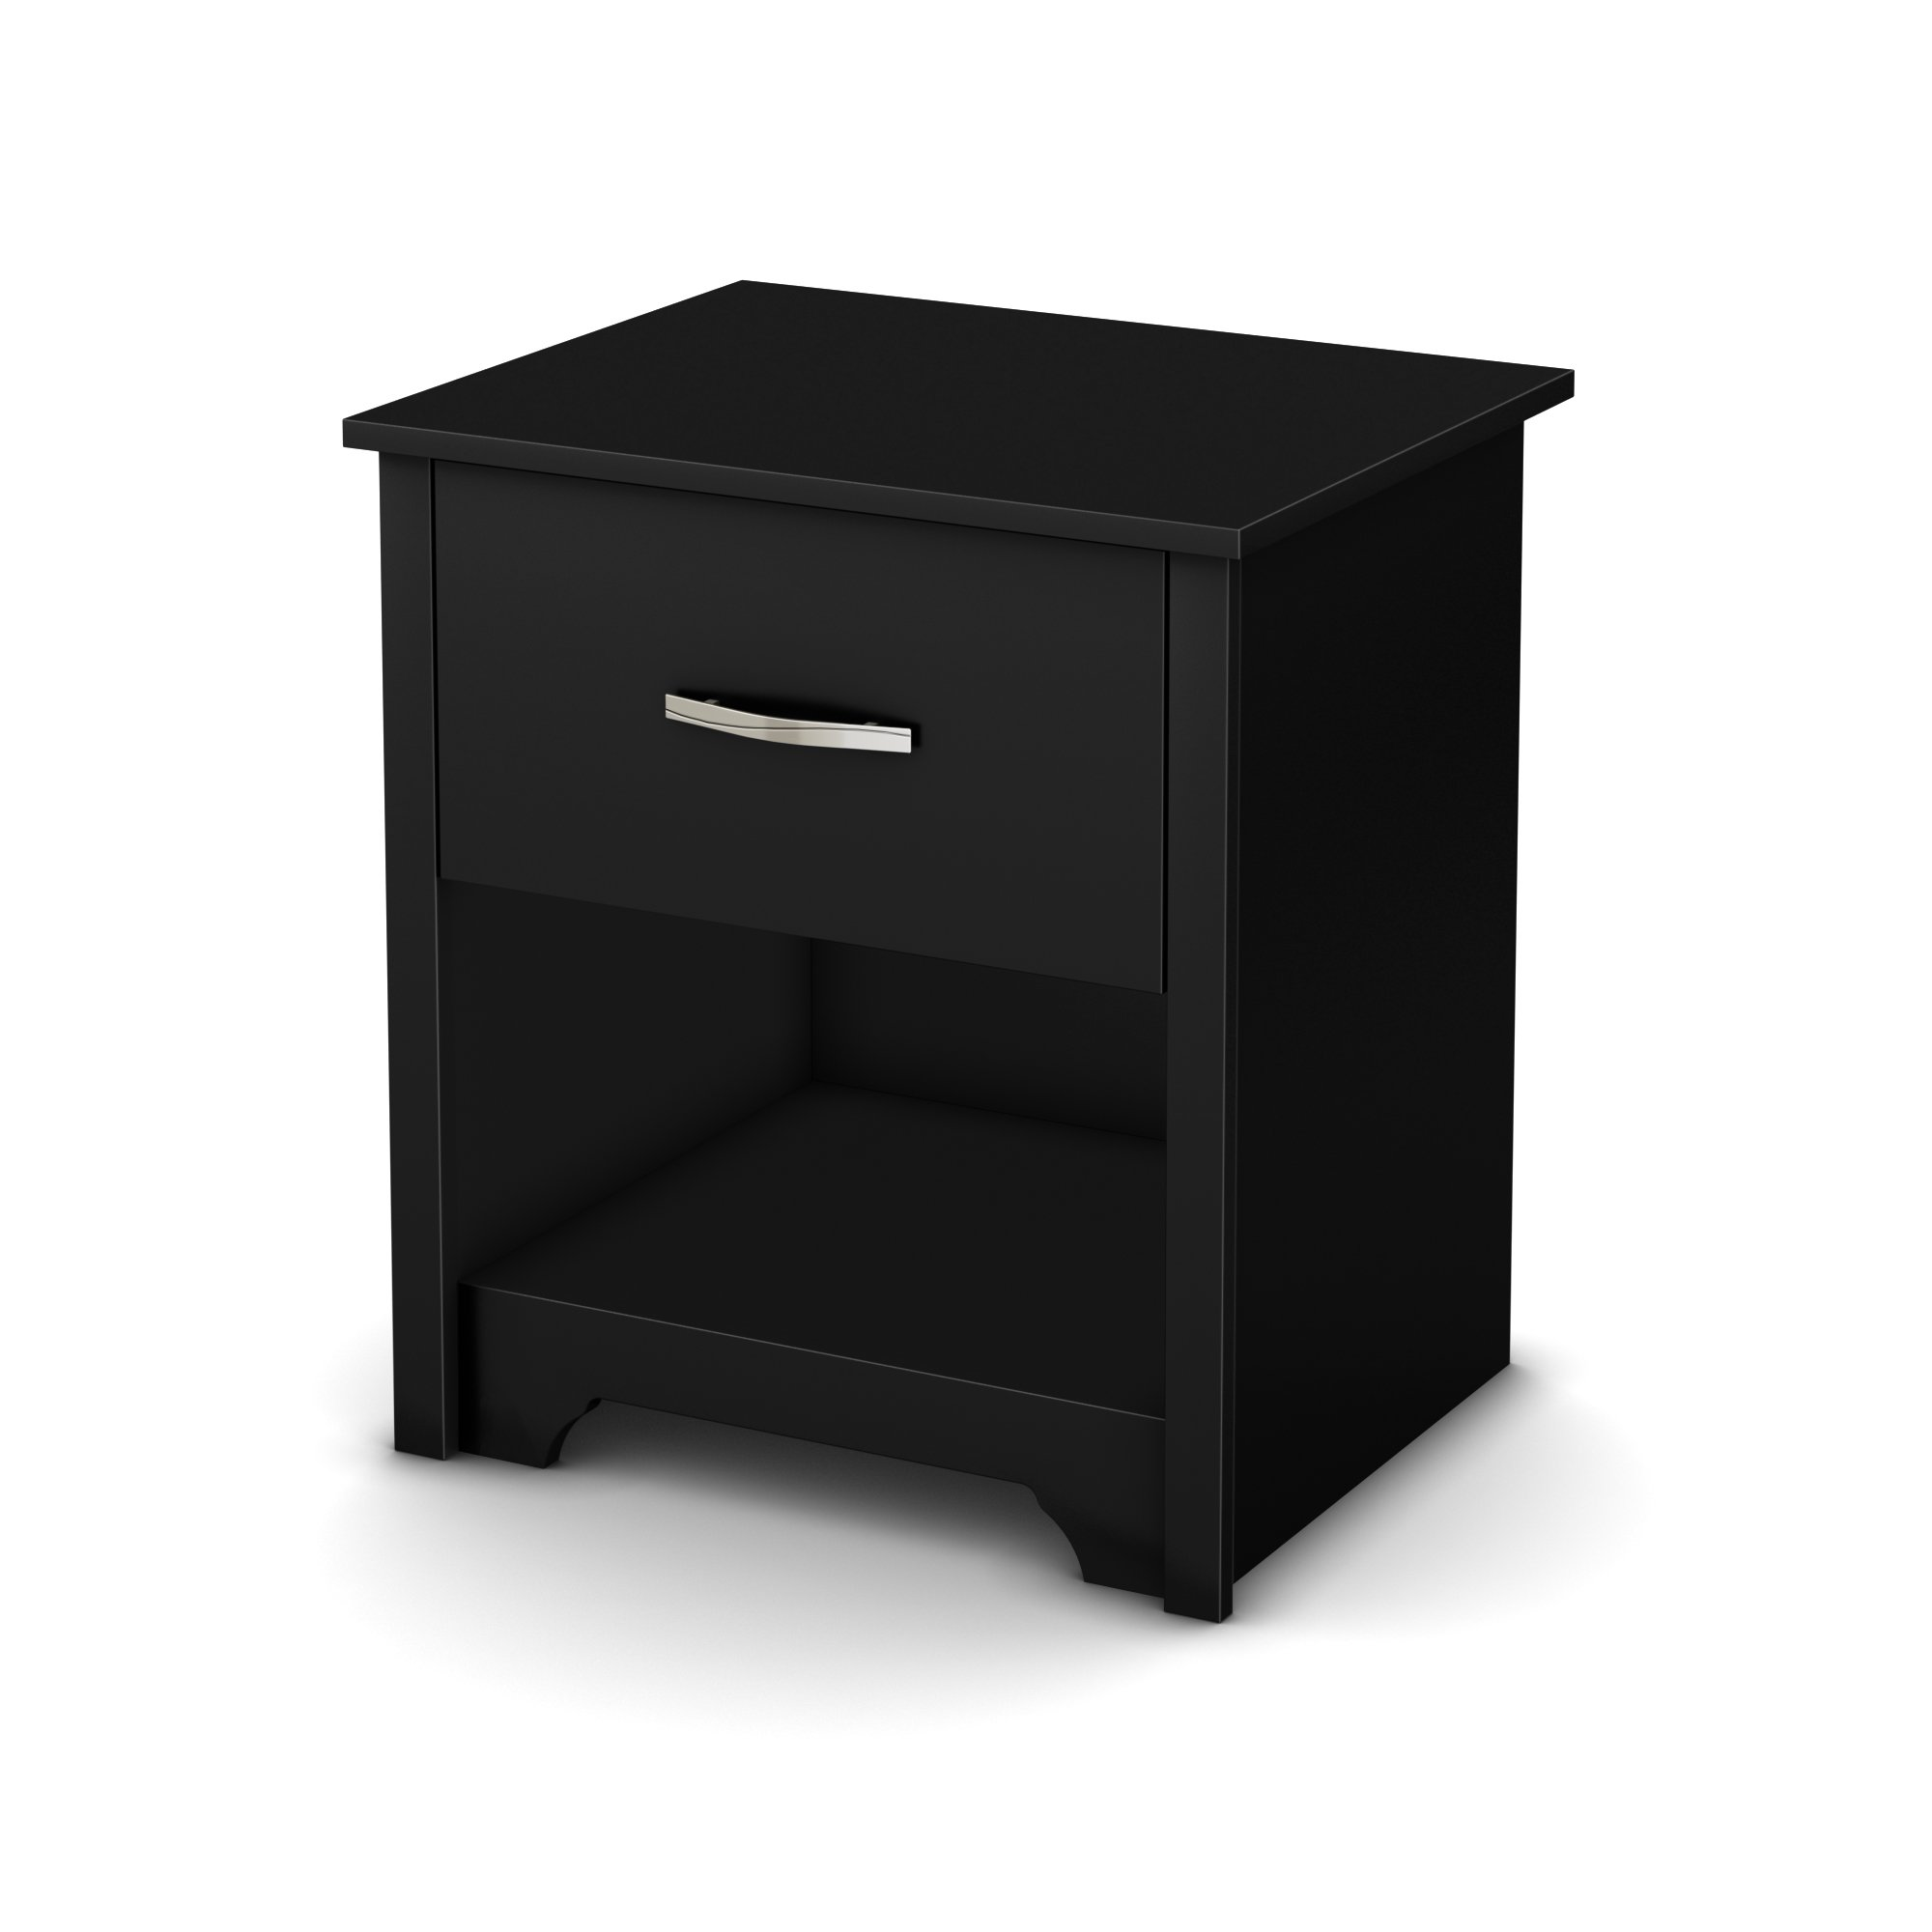 South Shore Fusion Nightstand, Pure Black with Grooved Metal Handles by South Shore (Image #2)